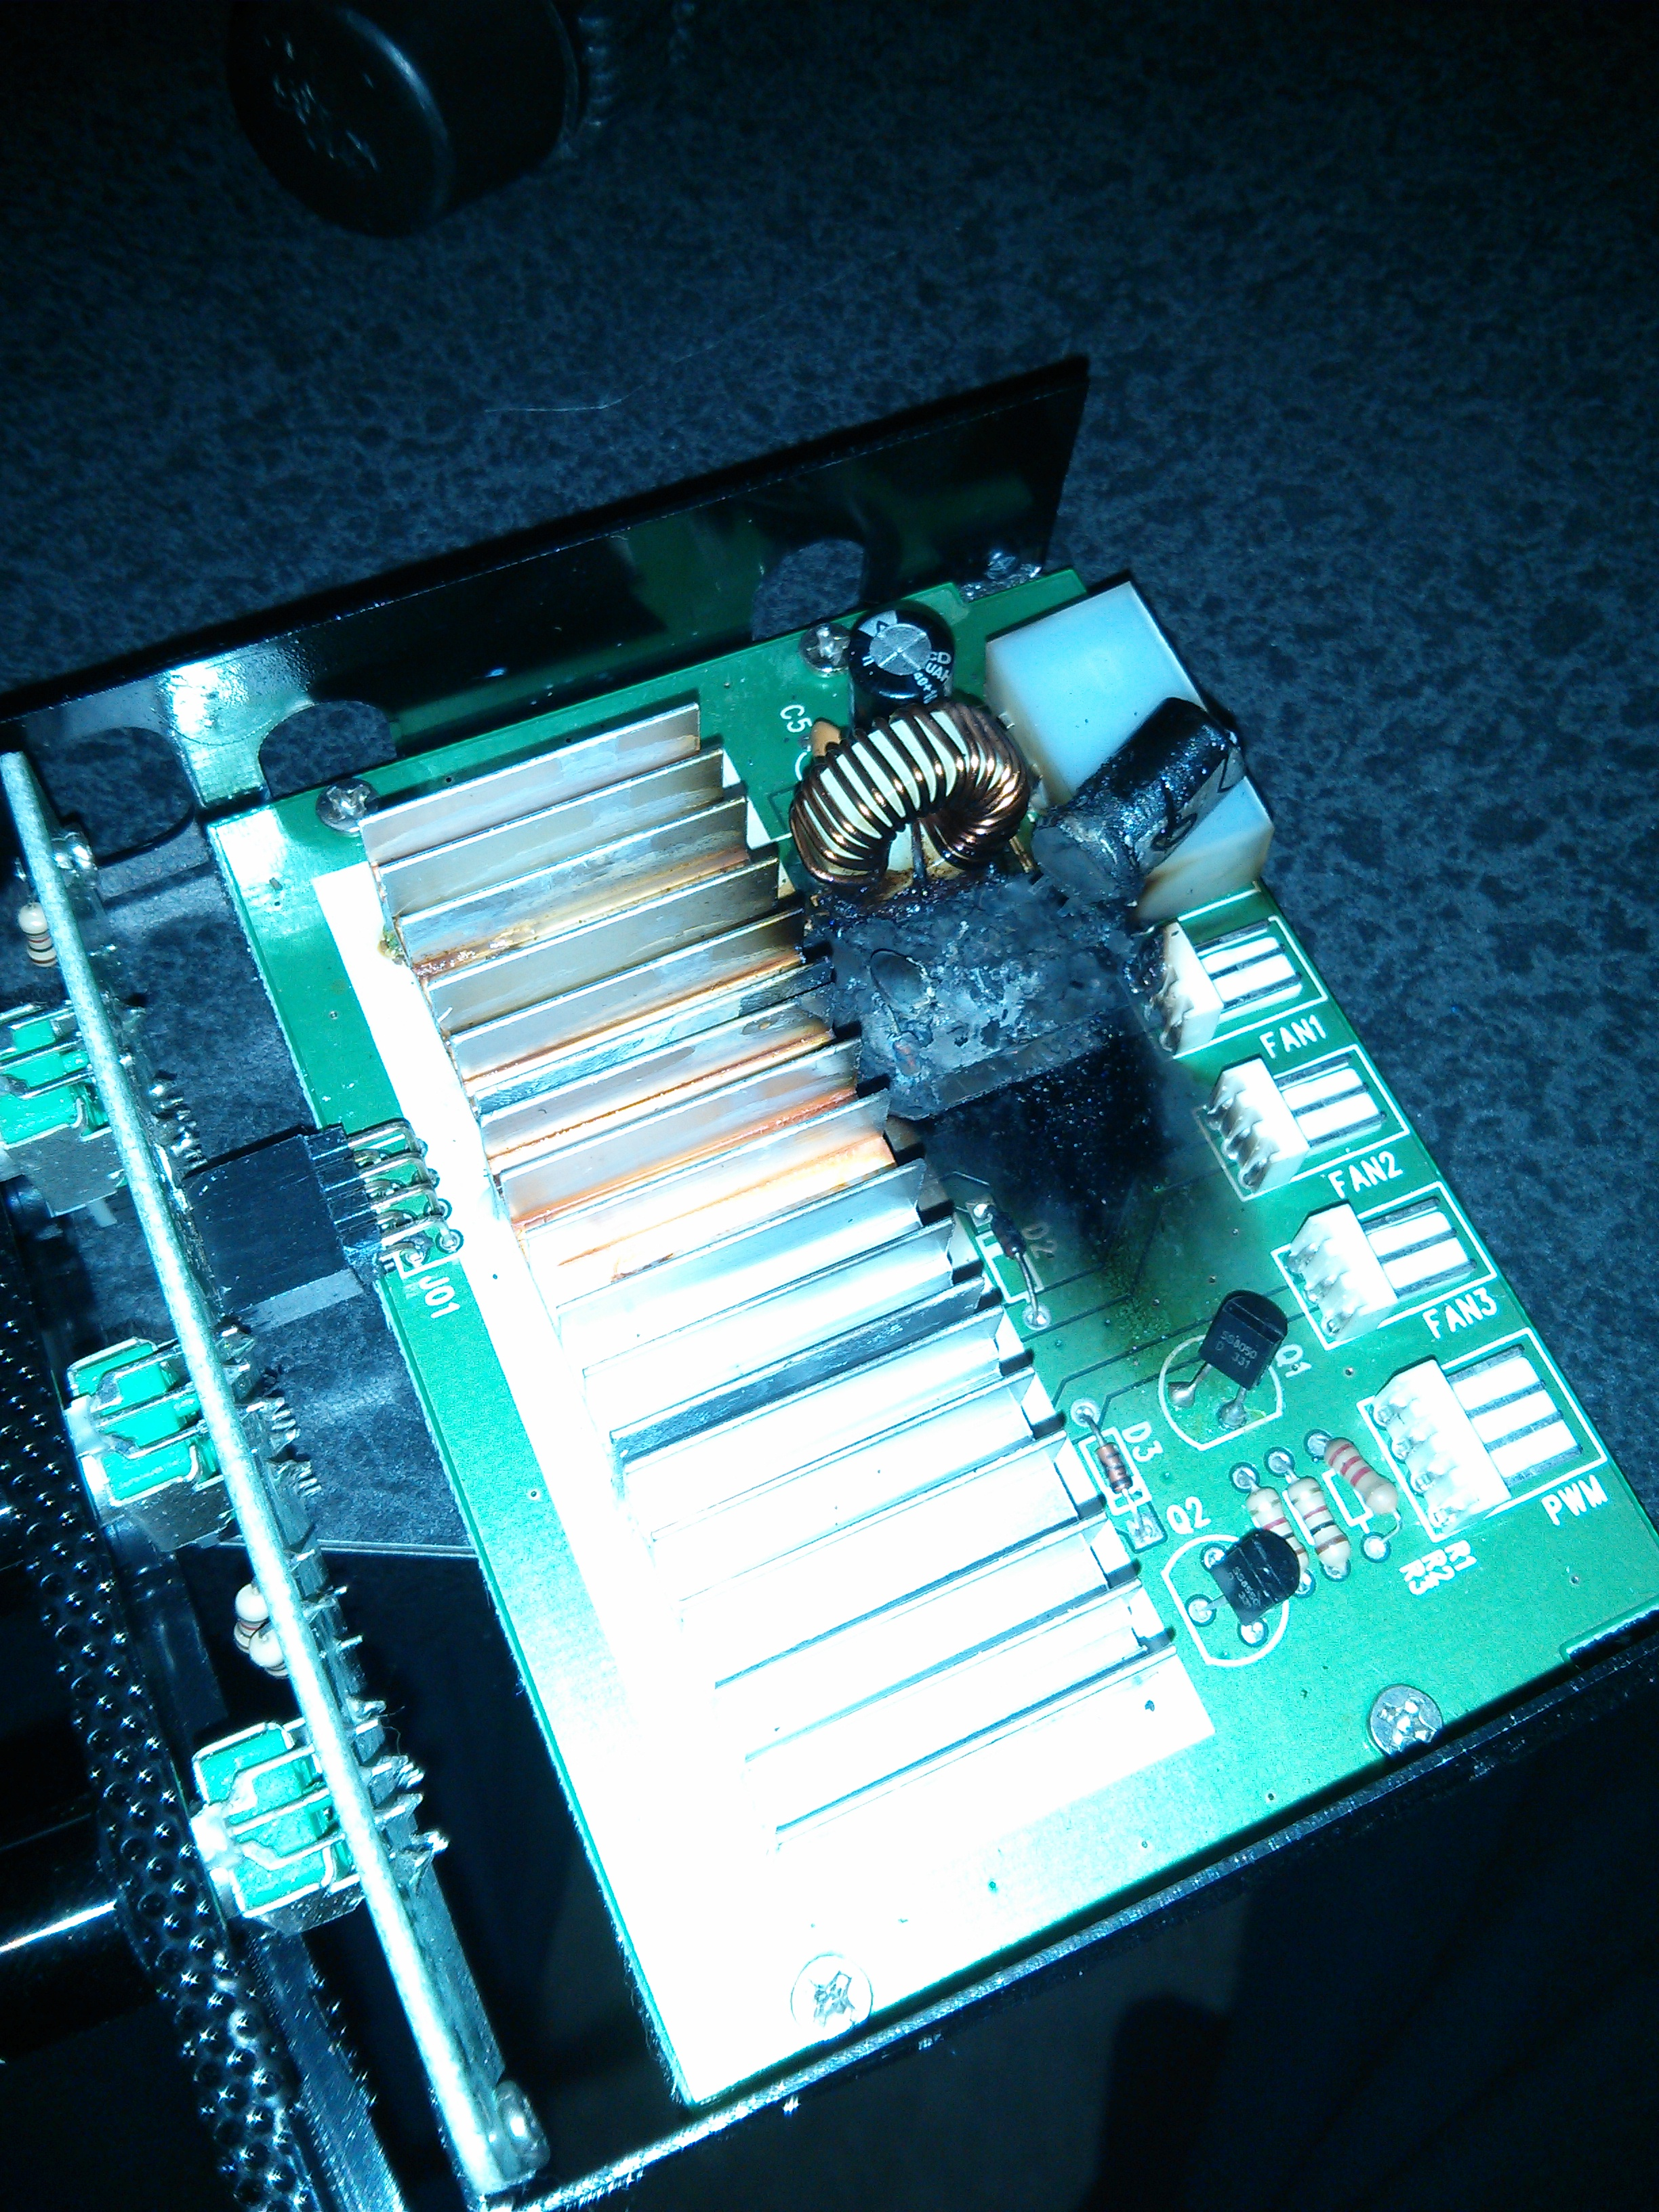 Fan Controller Burnt up, This is Top angle